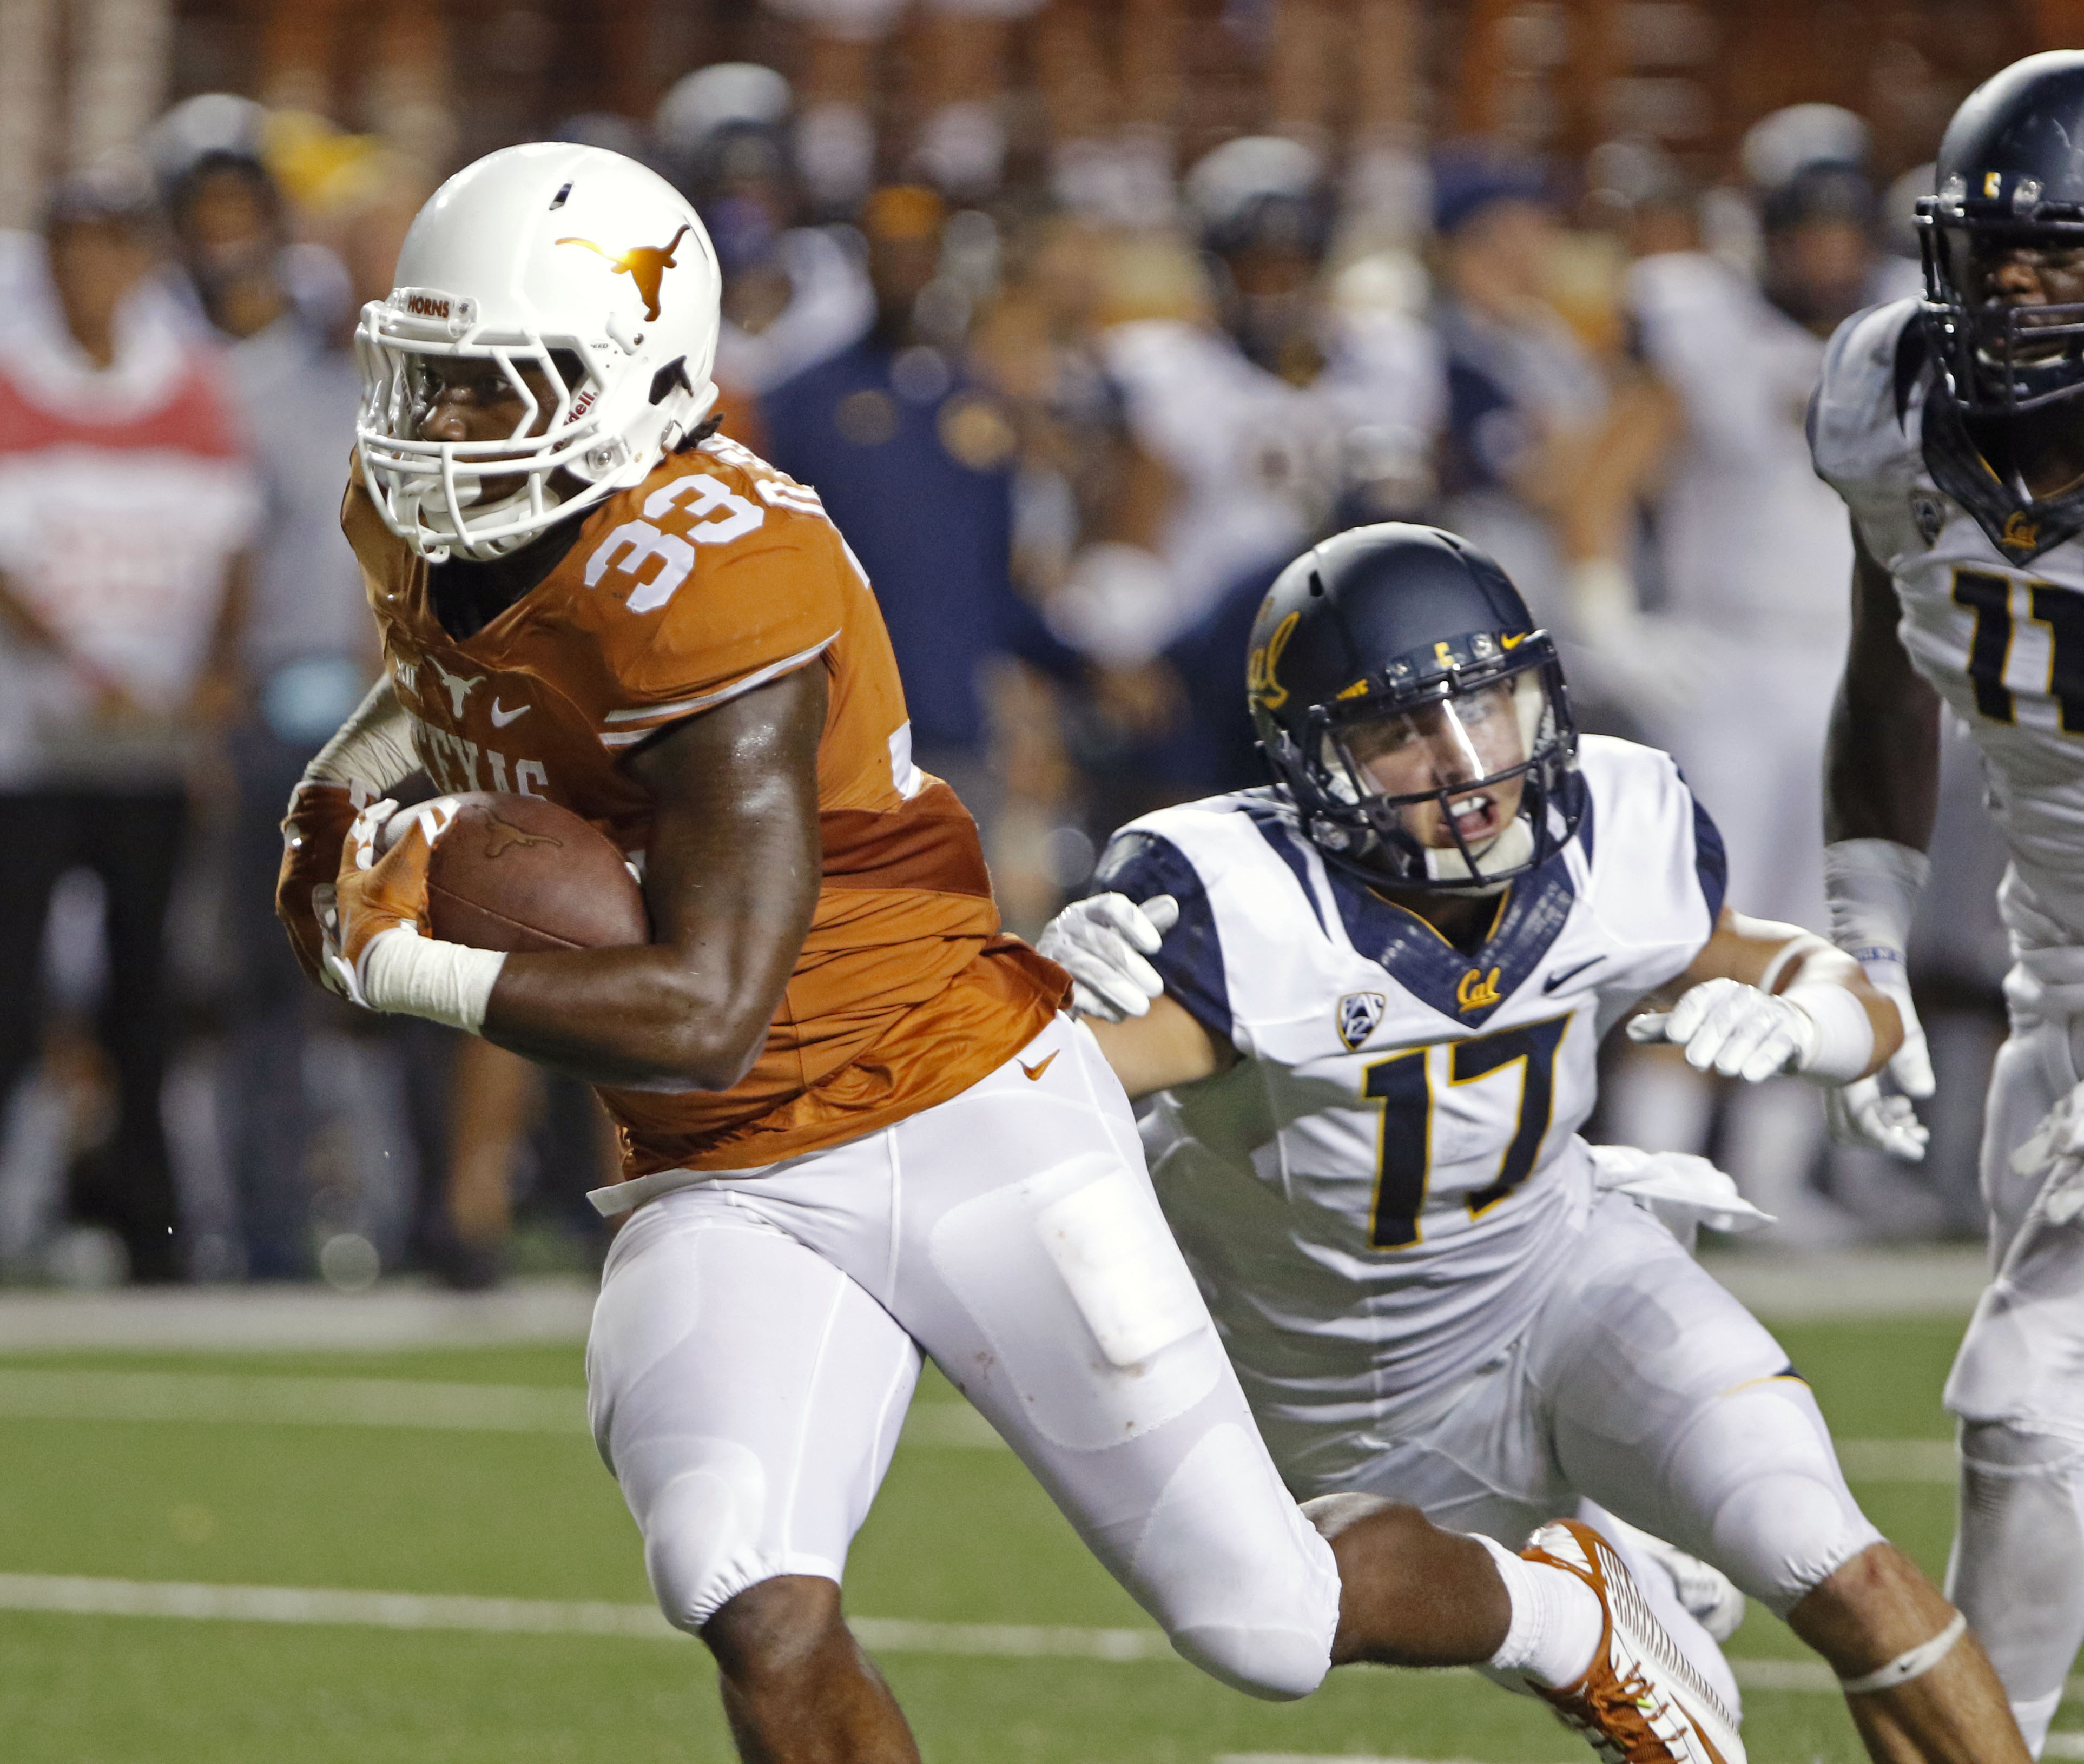 Texas running back D'Onta Foreman (33) runs for a touchdown against California's Luke Rubenzer (17) during the second half of an NCAA college football game, Saturday, Sept. 19, 2015, in Austin, Texas. (AP Photo/Michael Thomas)